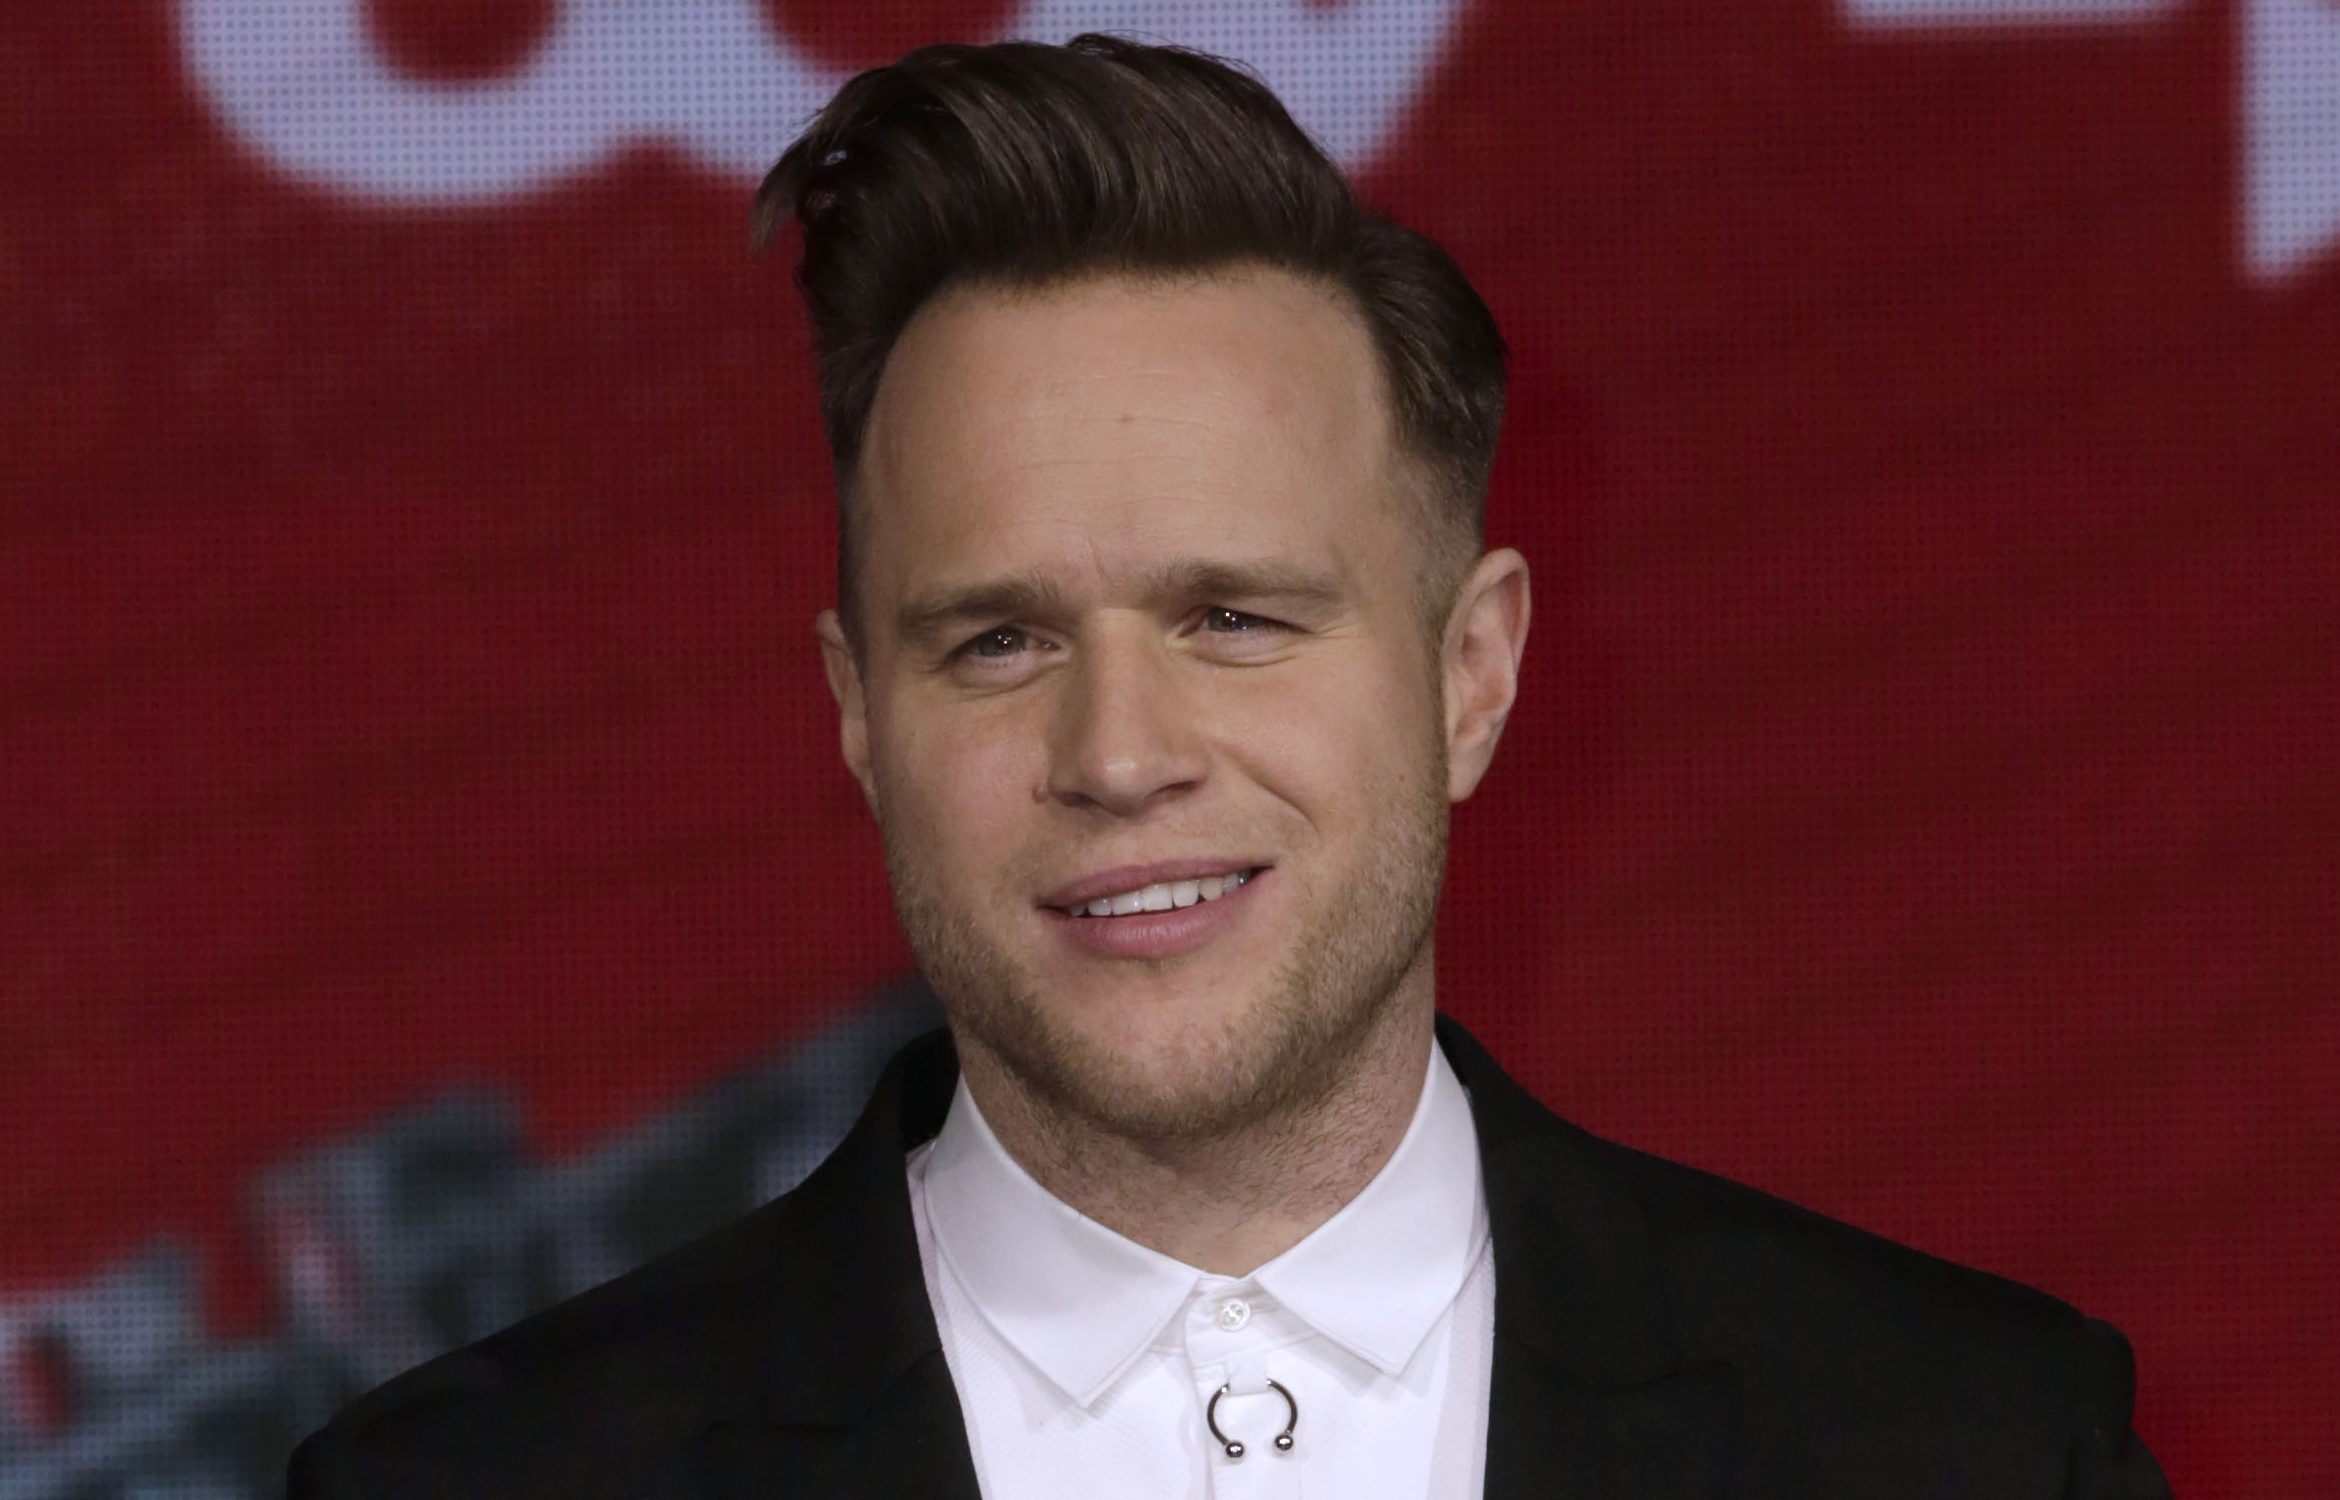 Olly Murs shows off new hairdo on Good Morning Britain